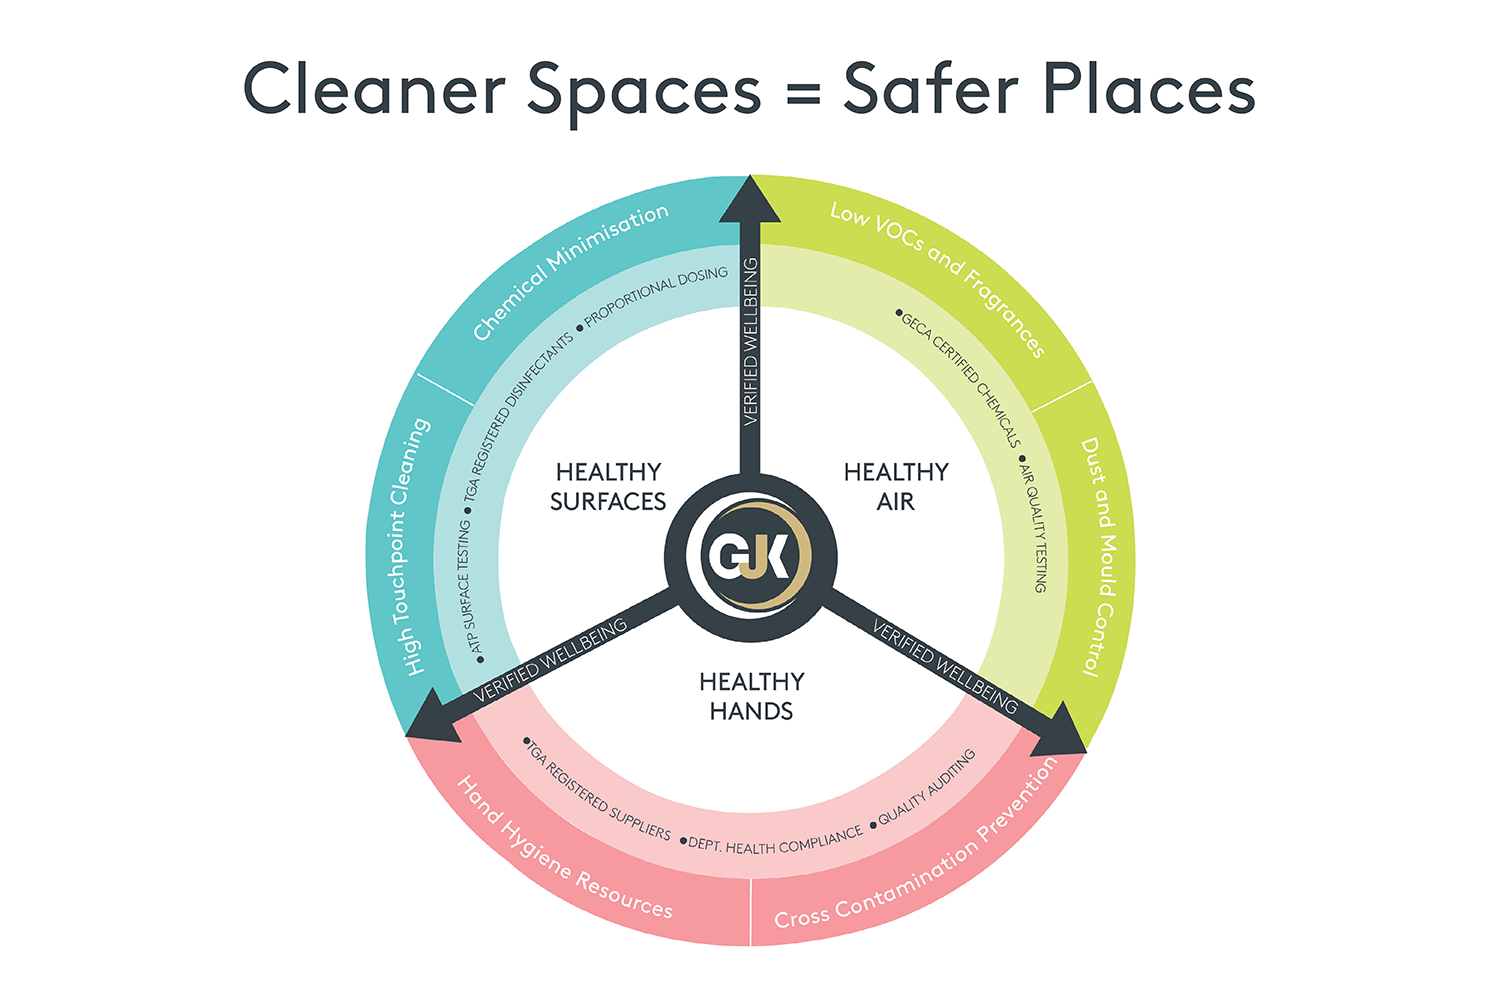 Cleaner Spaces Safer Places Model